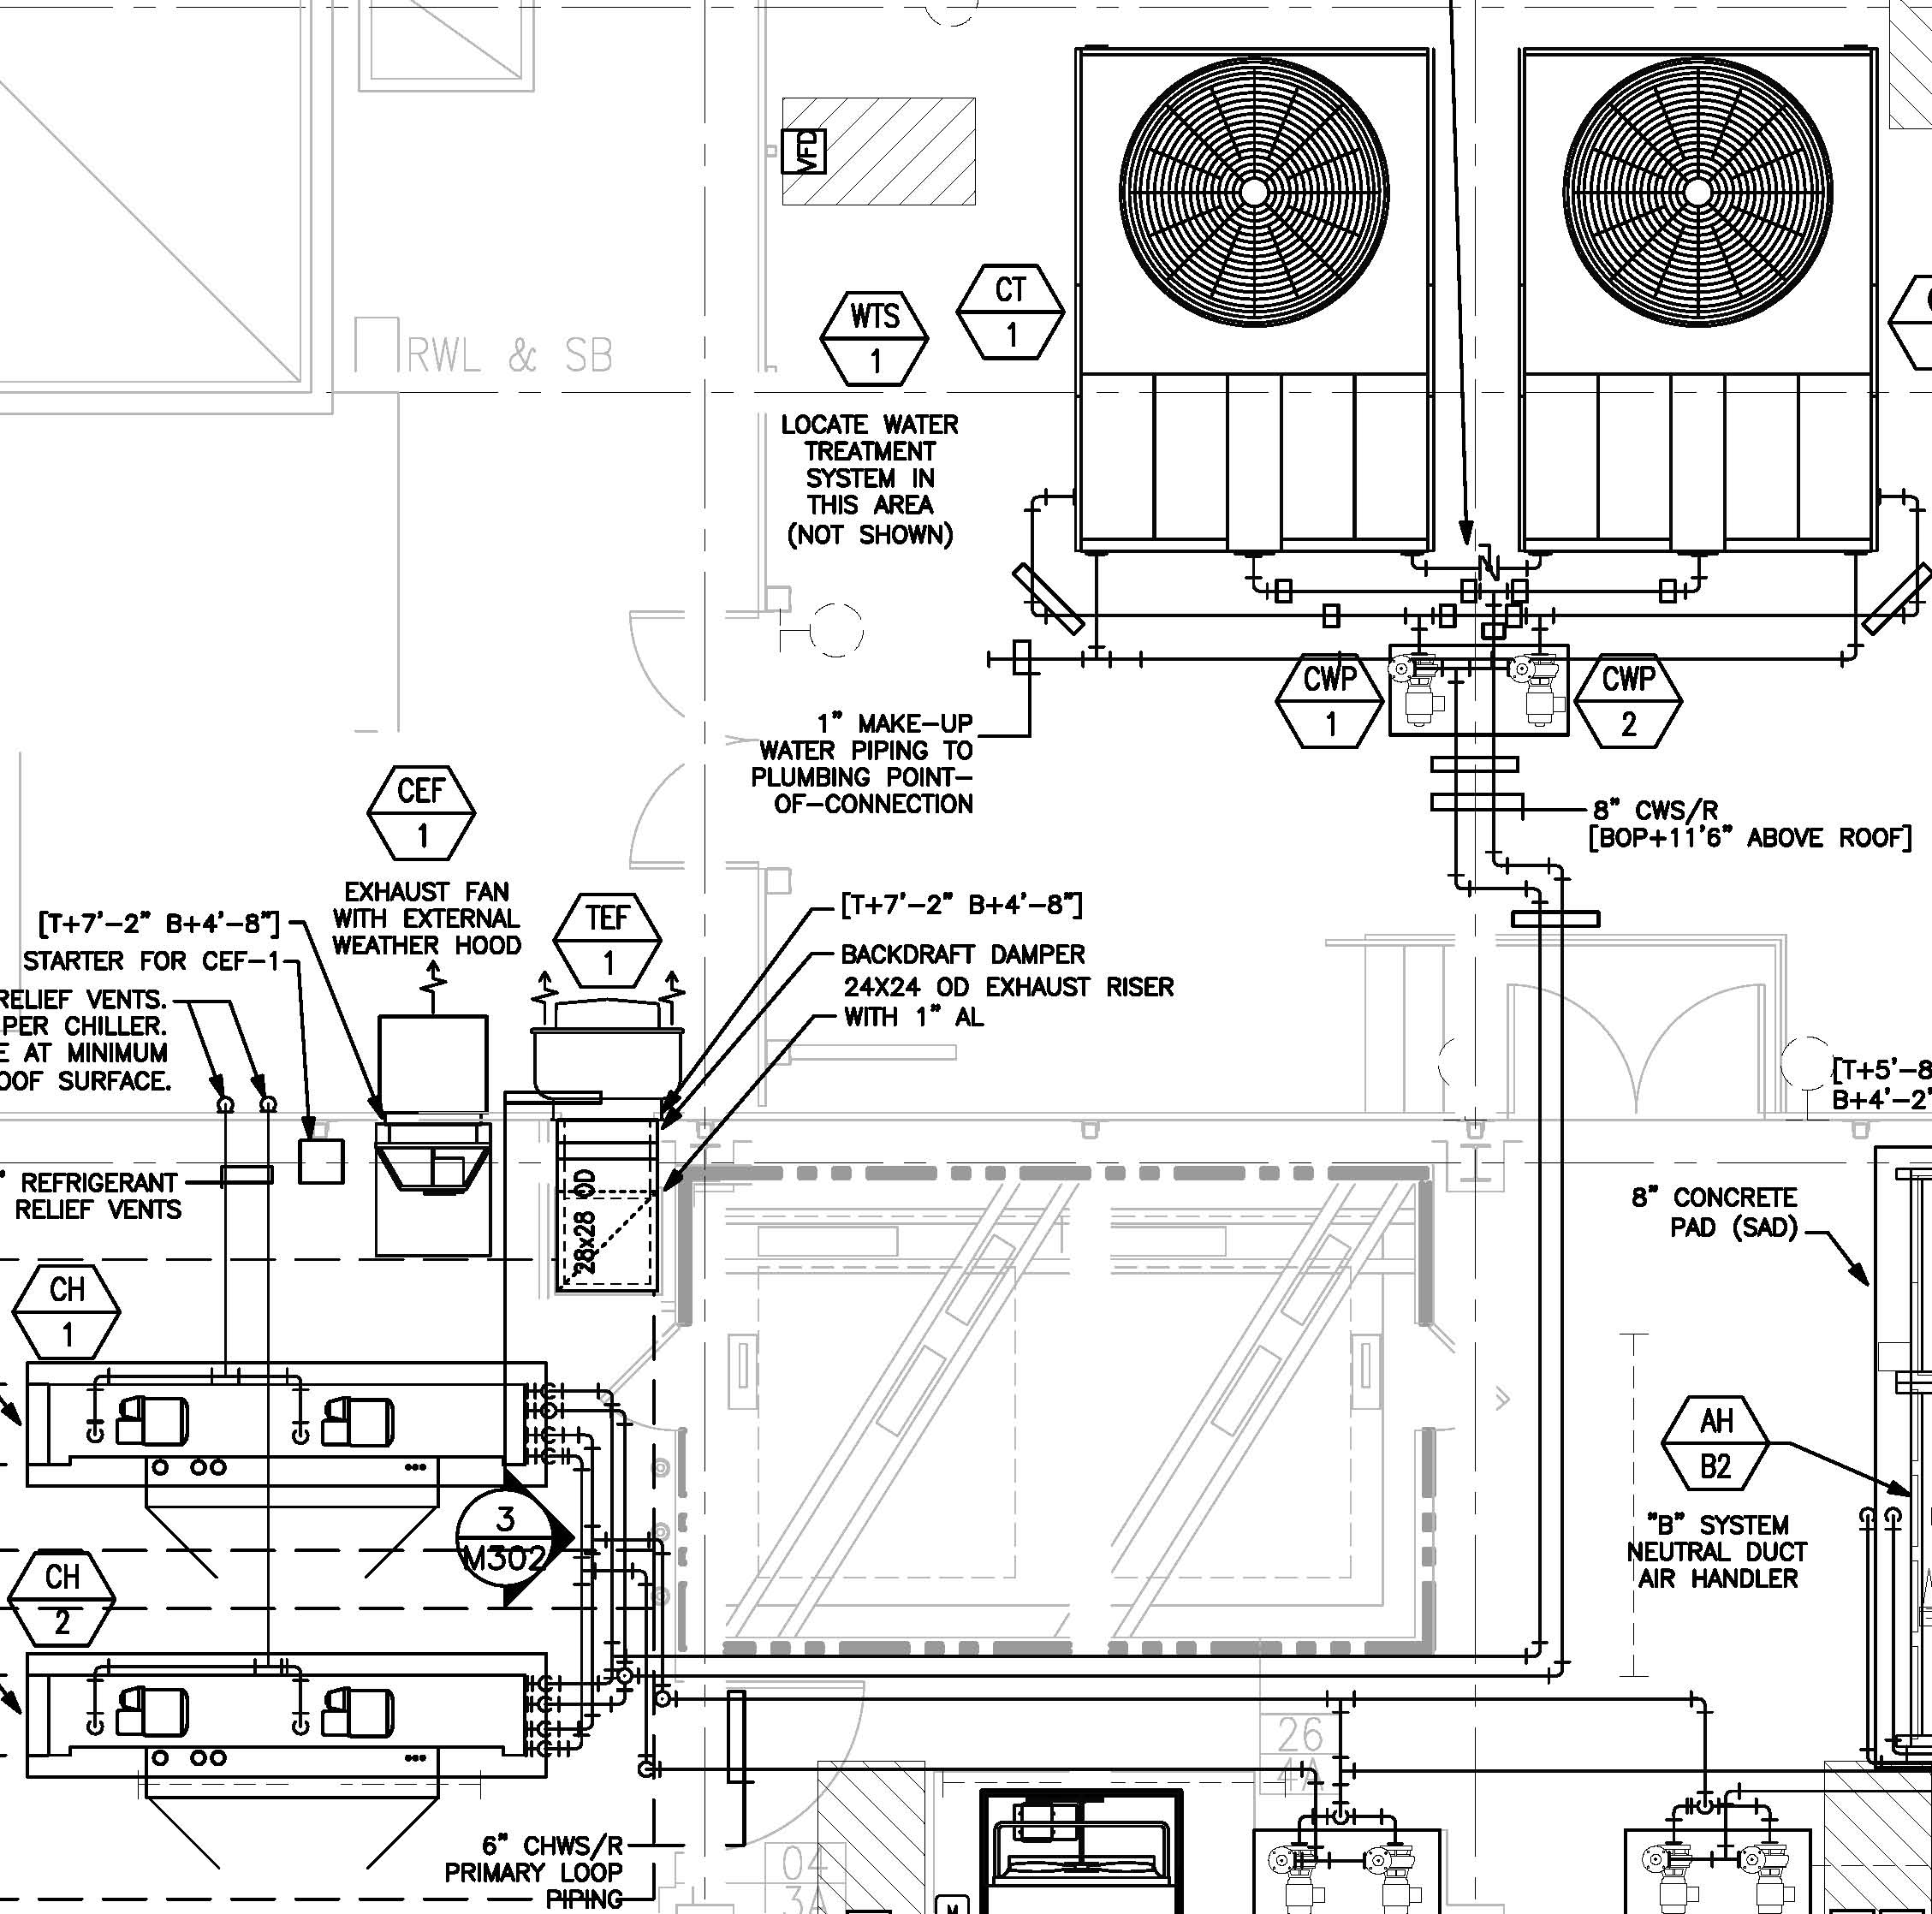 norlake walk in cooler wiring diagram Download-Norlake Walk In Freezer Wiring Diagram Elegant Walk In Cooler Troubleshooting Chart Free Troubleshooting 13-j